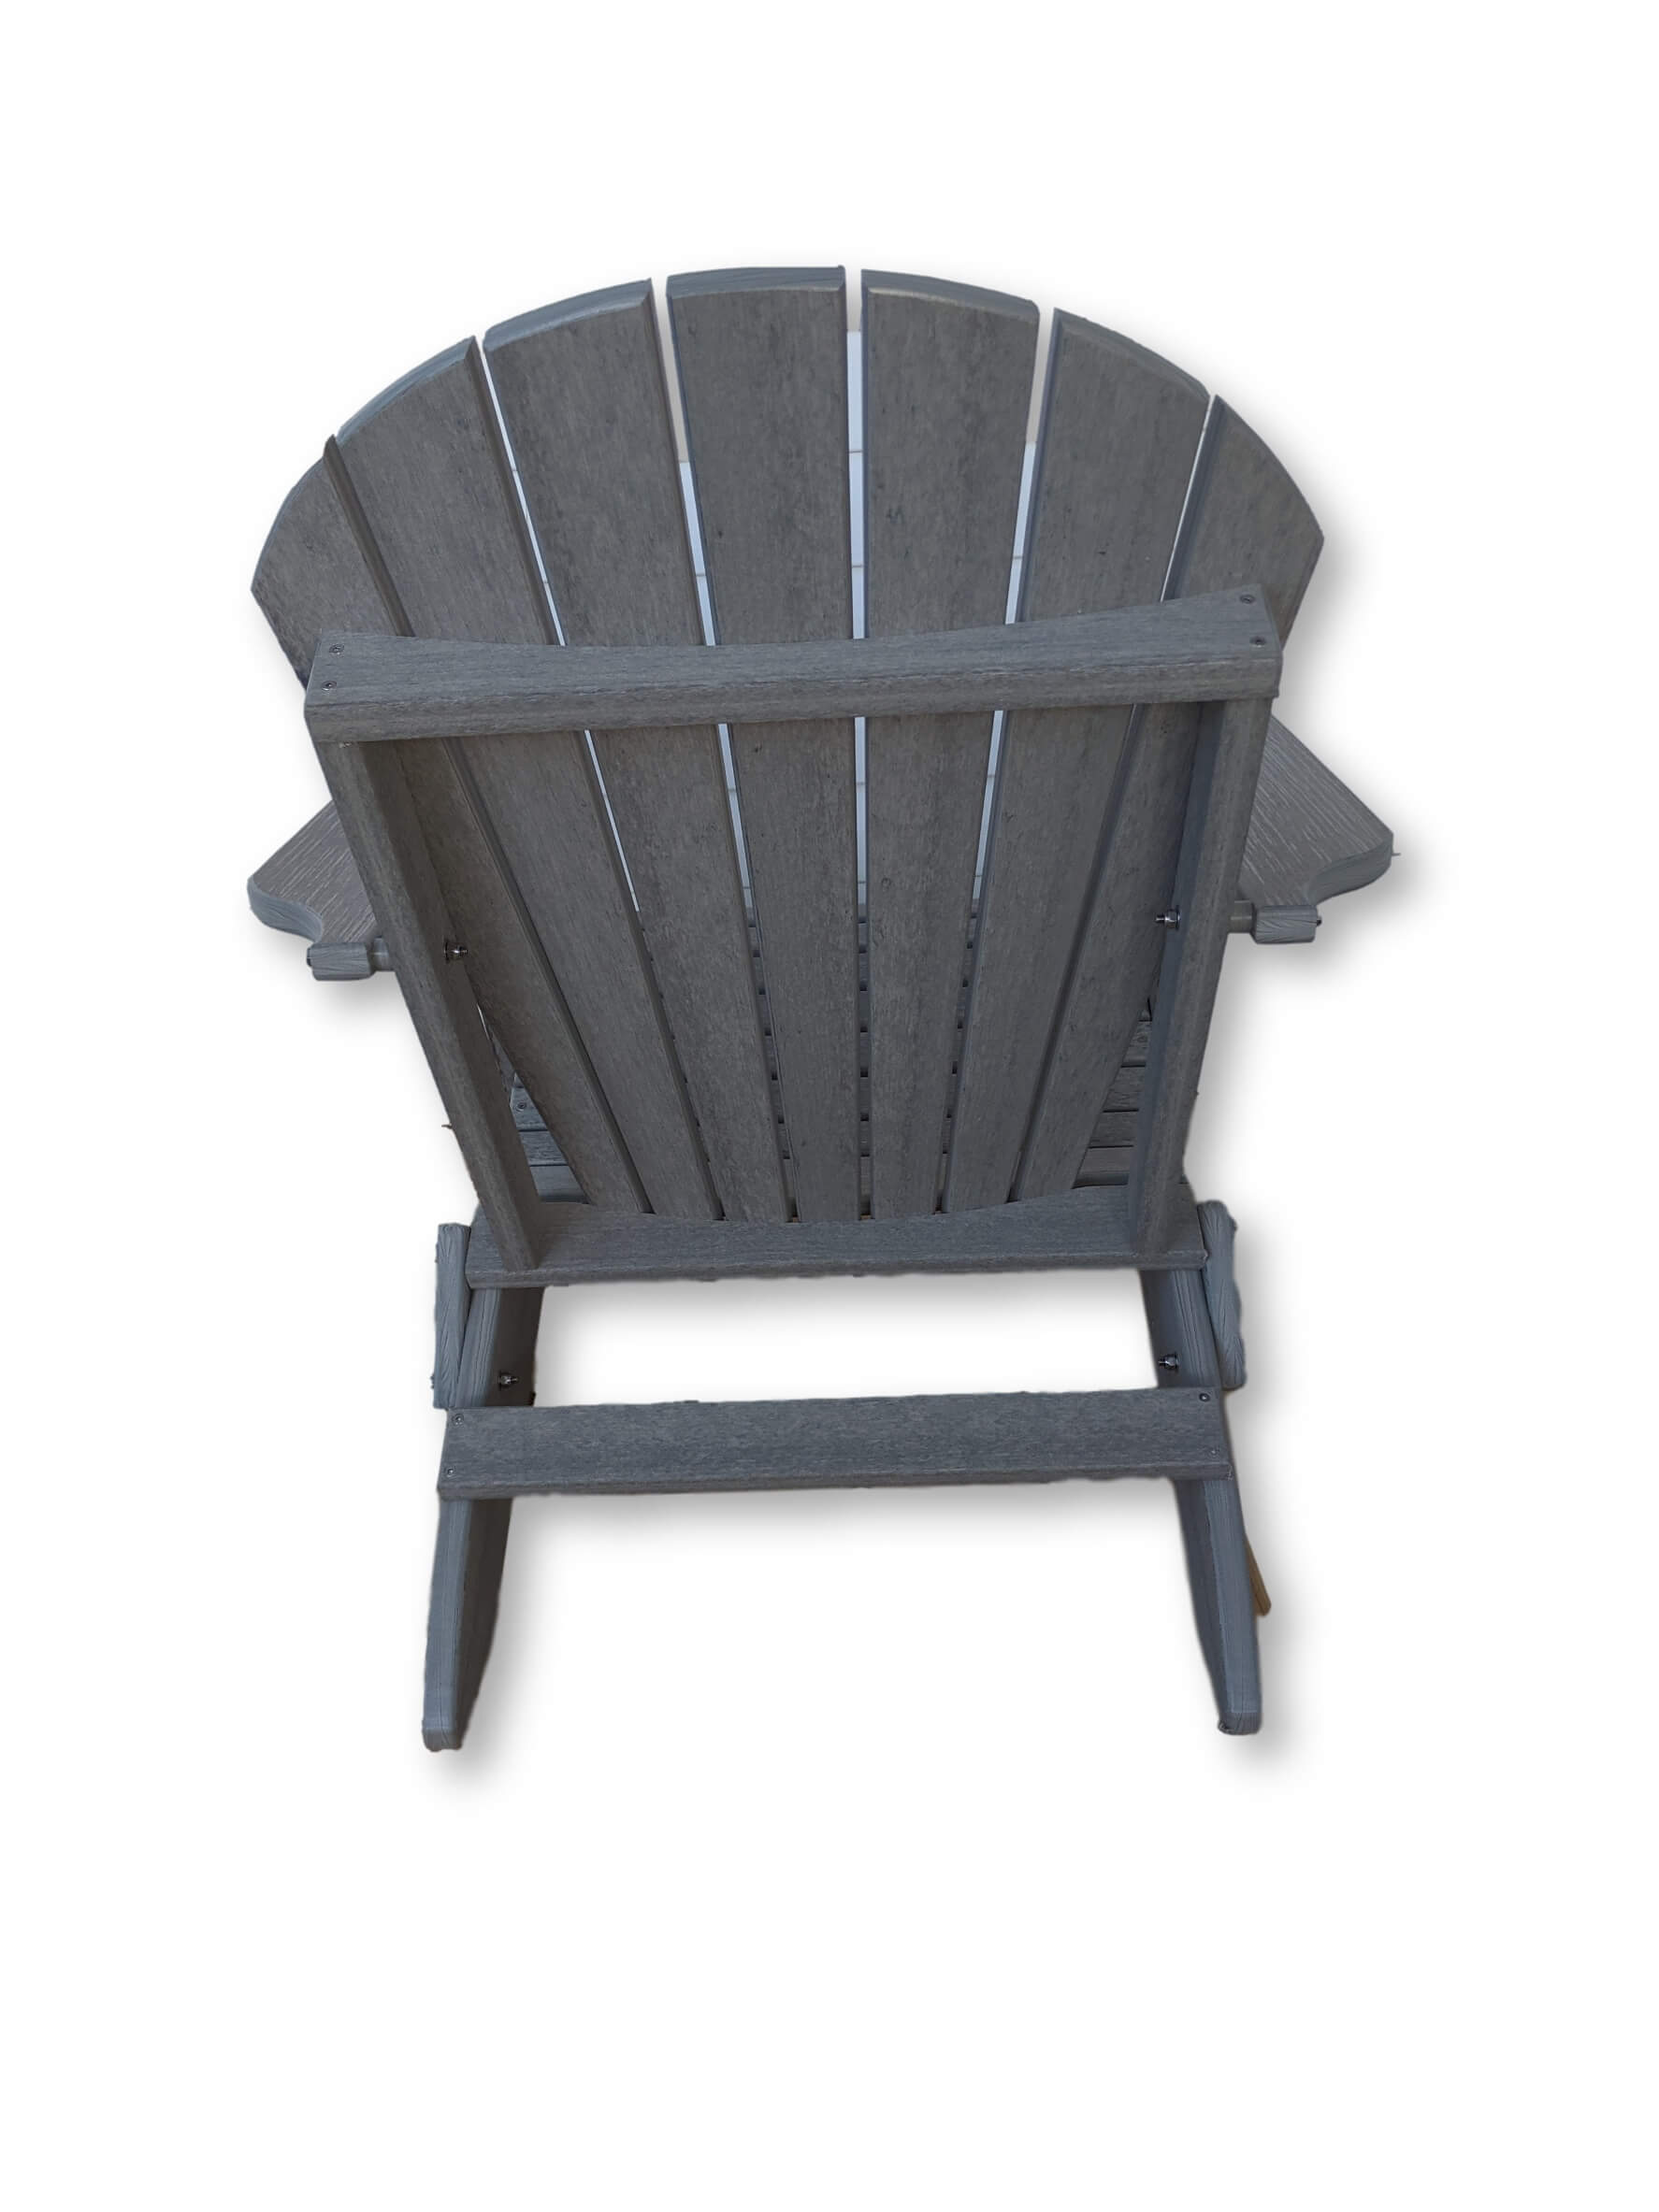 DriftWood Gray Folding Adirondack Chair(No Cup Holders)